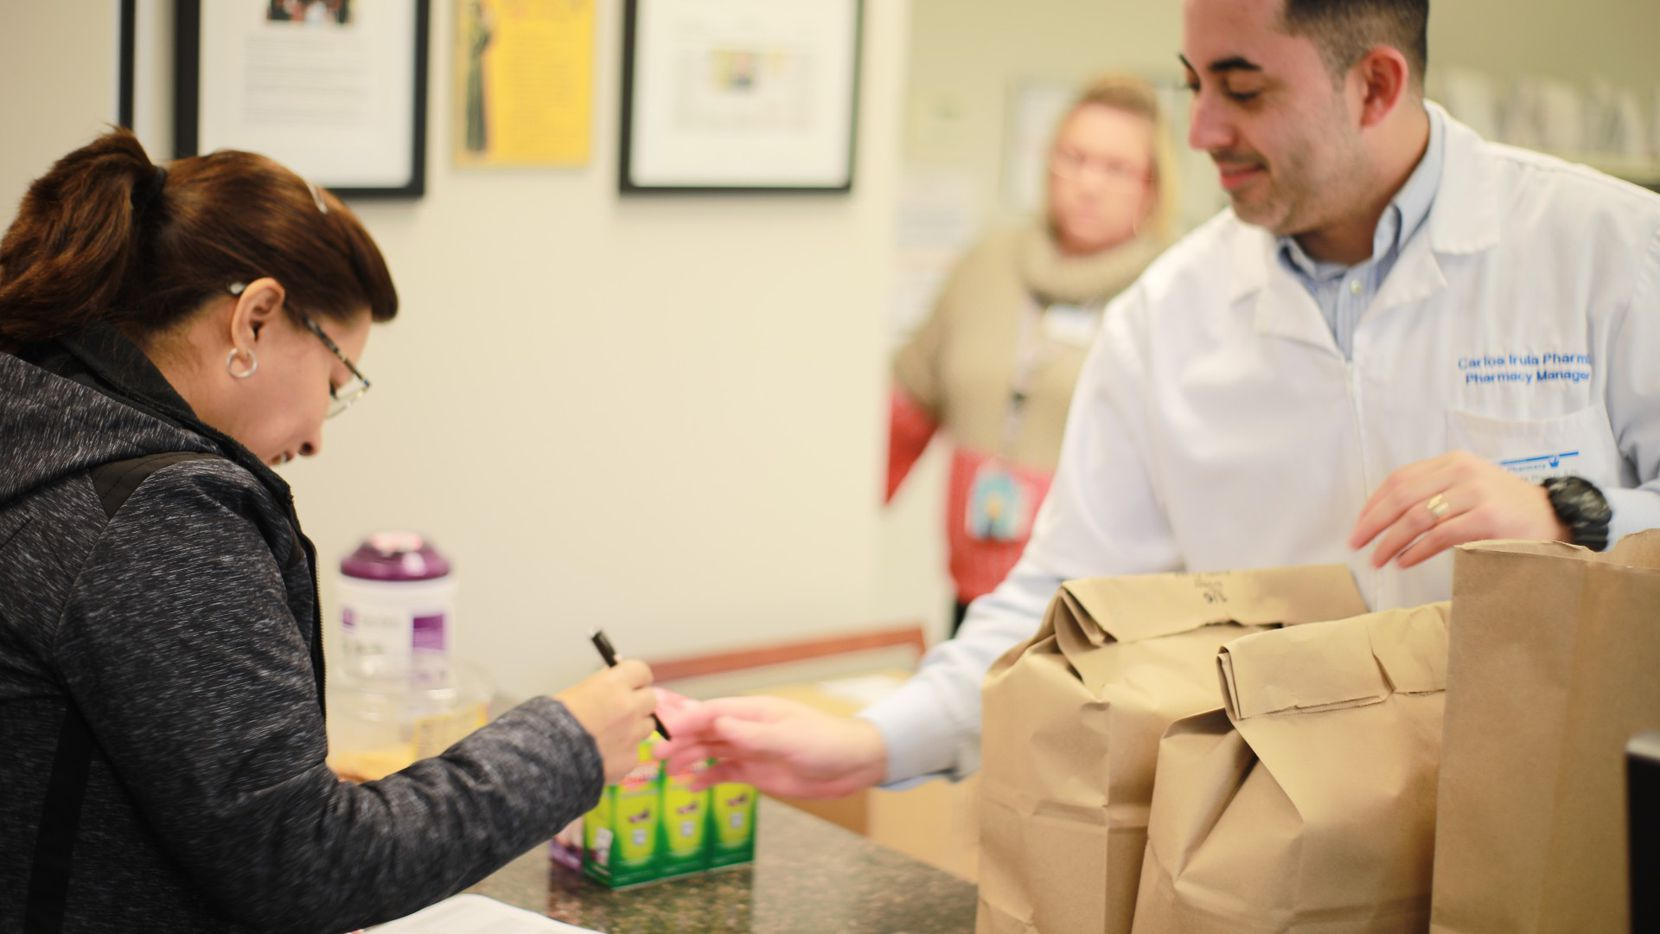 Carlos Irula, the pharmacist-in-charge at St. Vincent de Paul Pharmacy, helps a customer. The nonprofit has provided nearly $4 million in free prescriptions to North Texans in need during COVID-19.